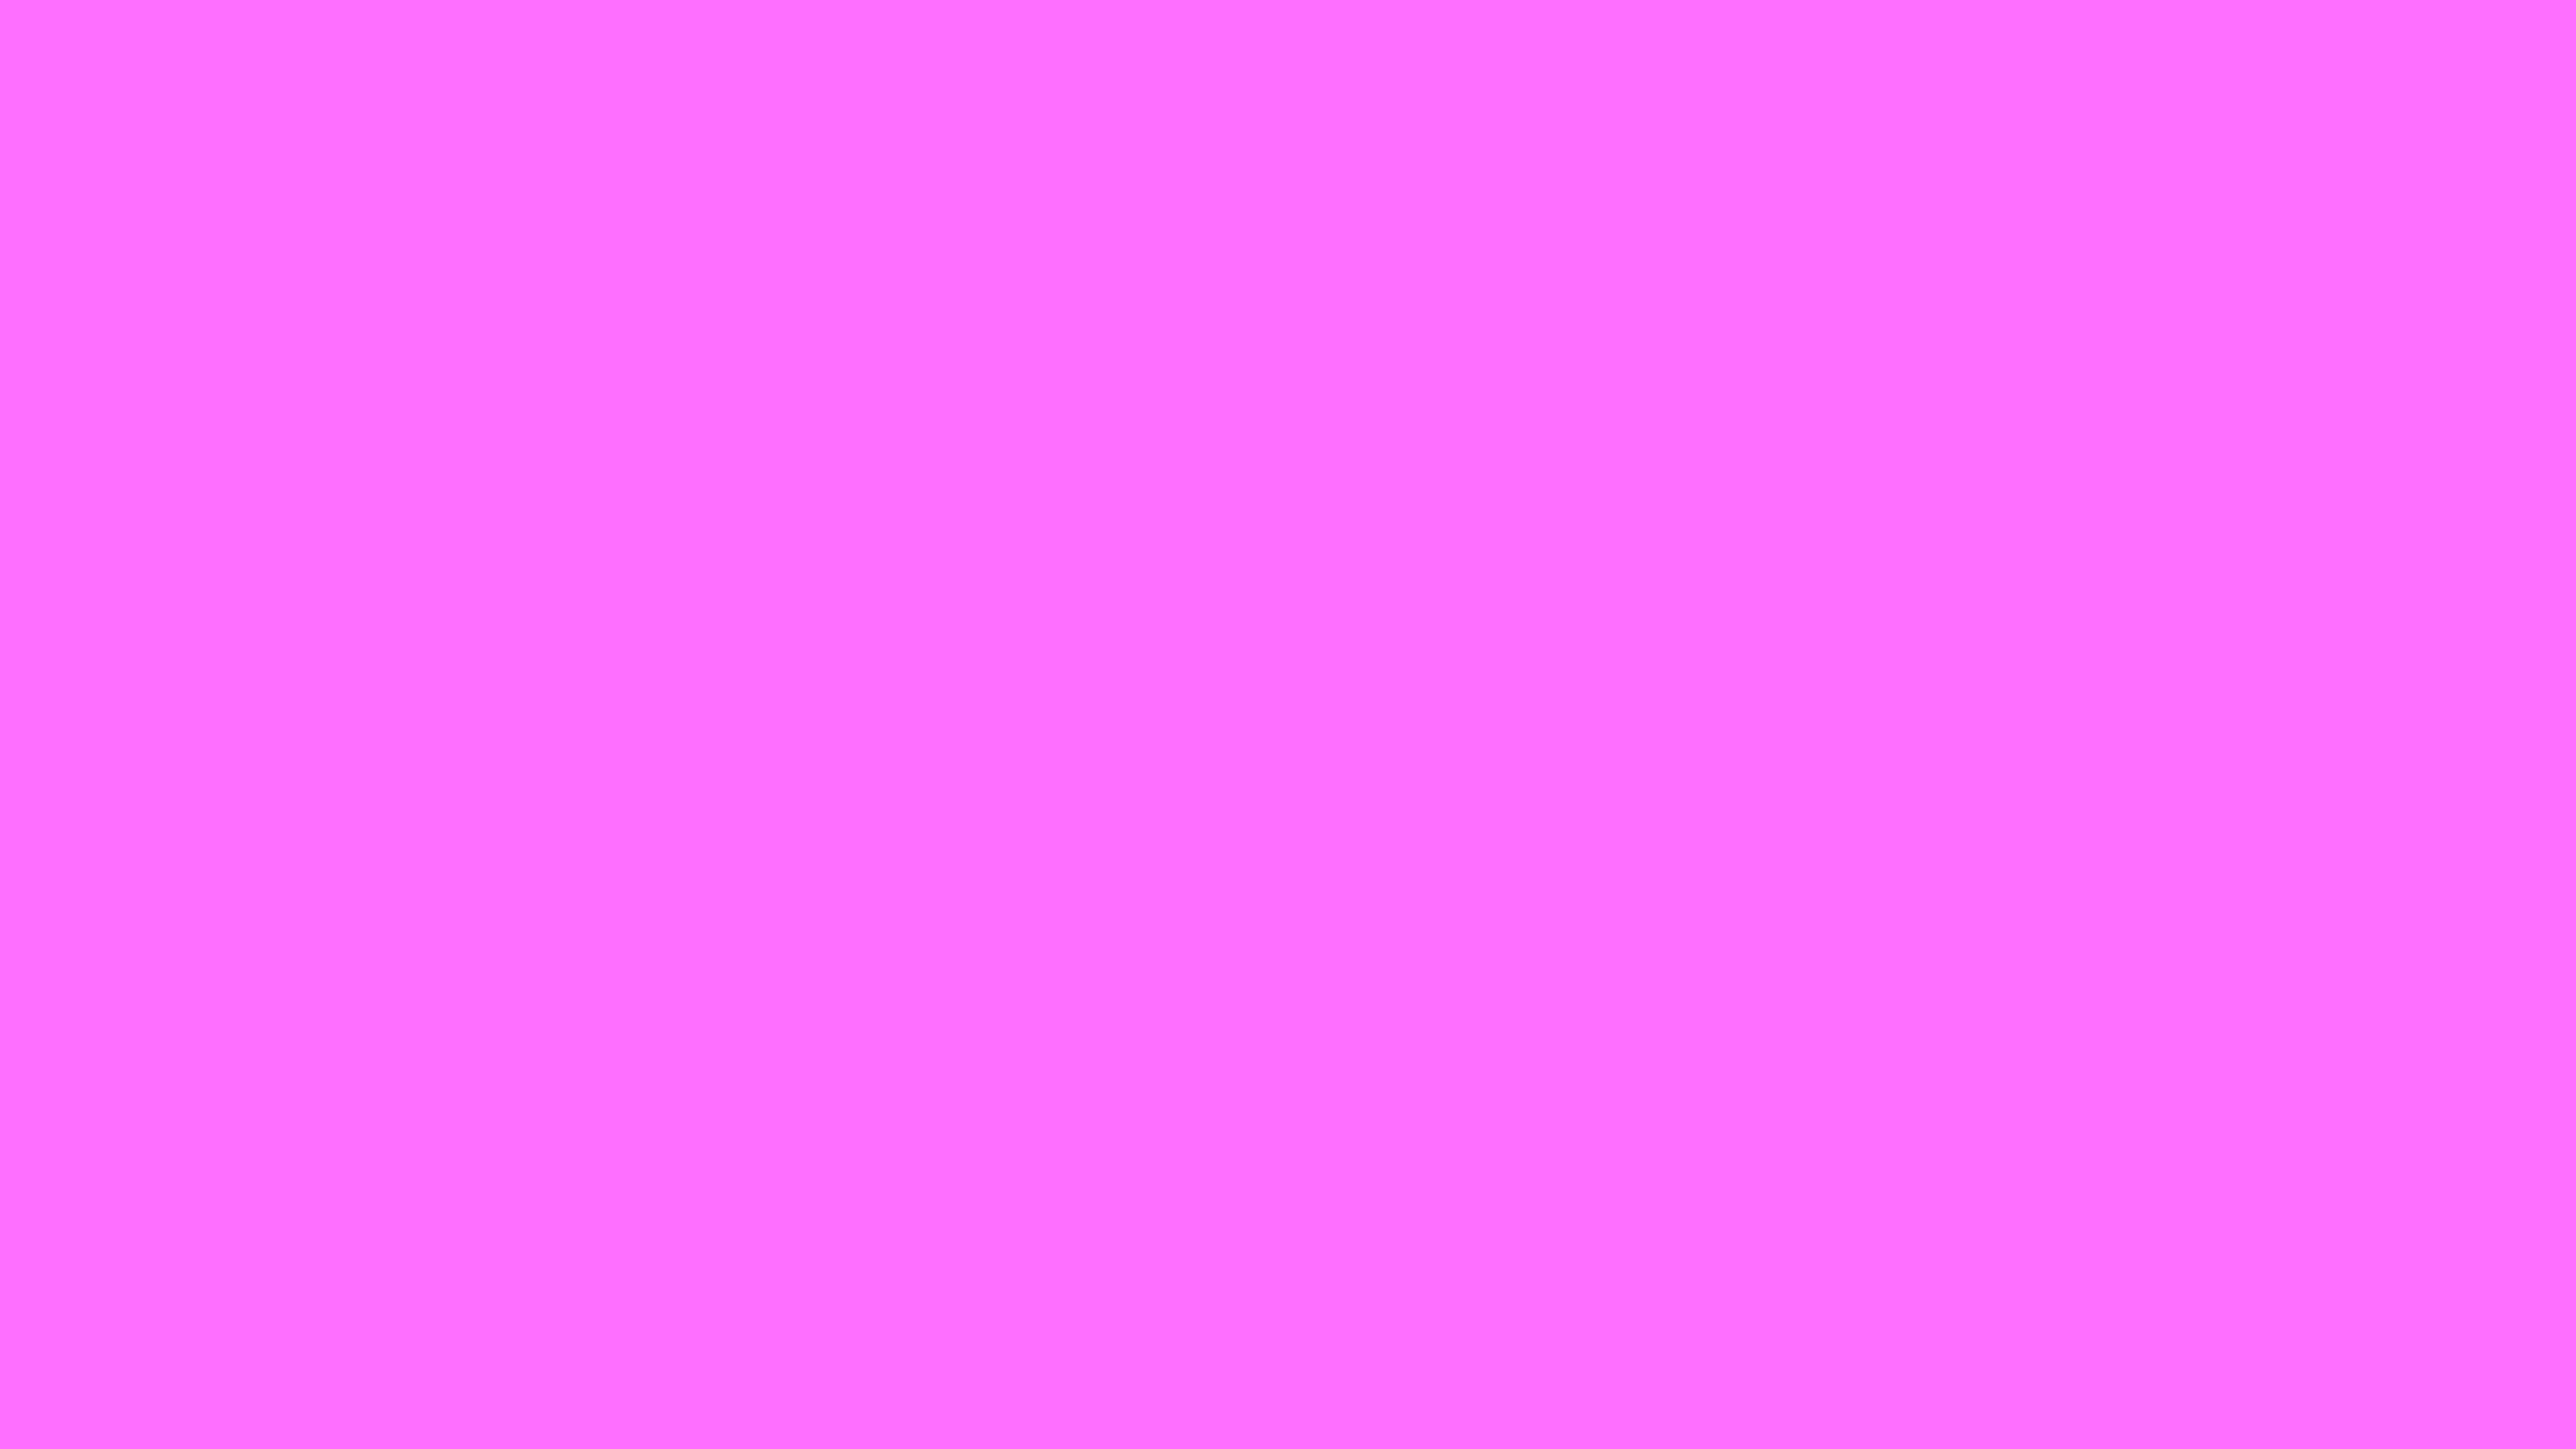 4096x2304 Ultra Pink Solid Color Background